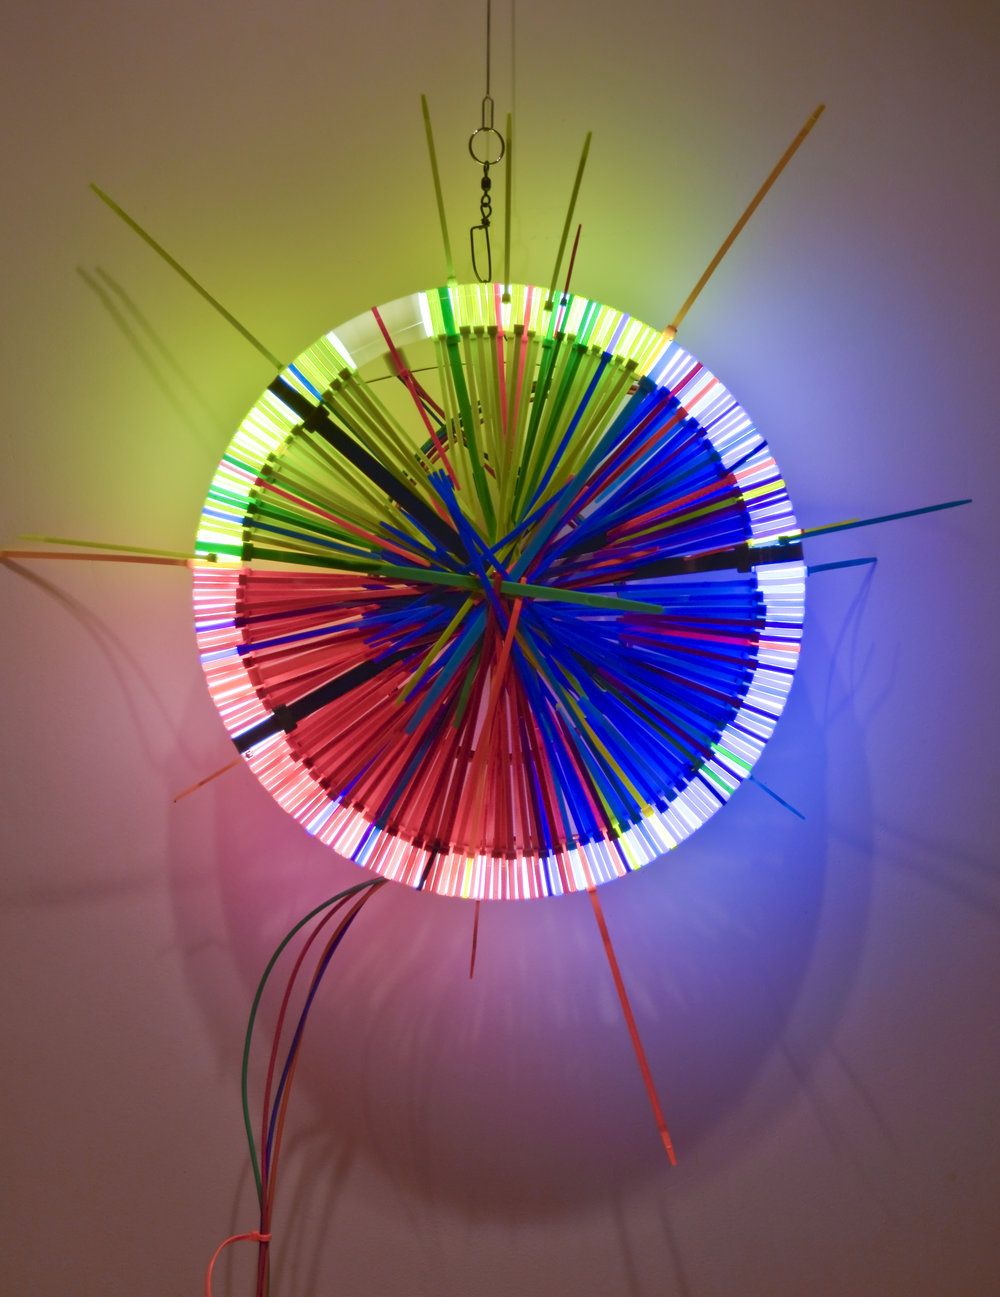 RGB   Fluorescent Lamp, color snap ties, loom heddles and fishing spinners and color wire 16 in lamp diameter 24 in overall